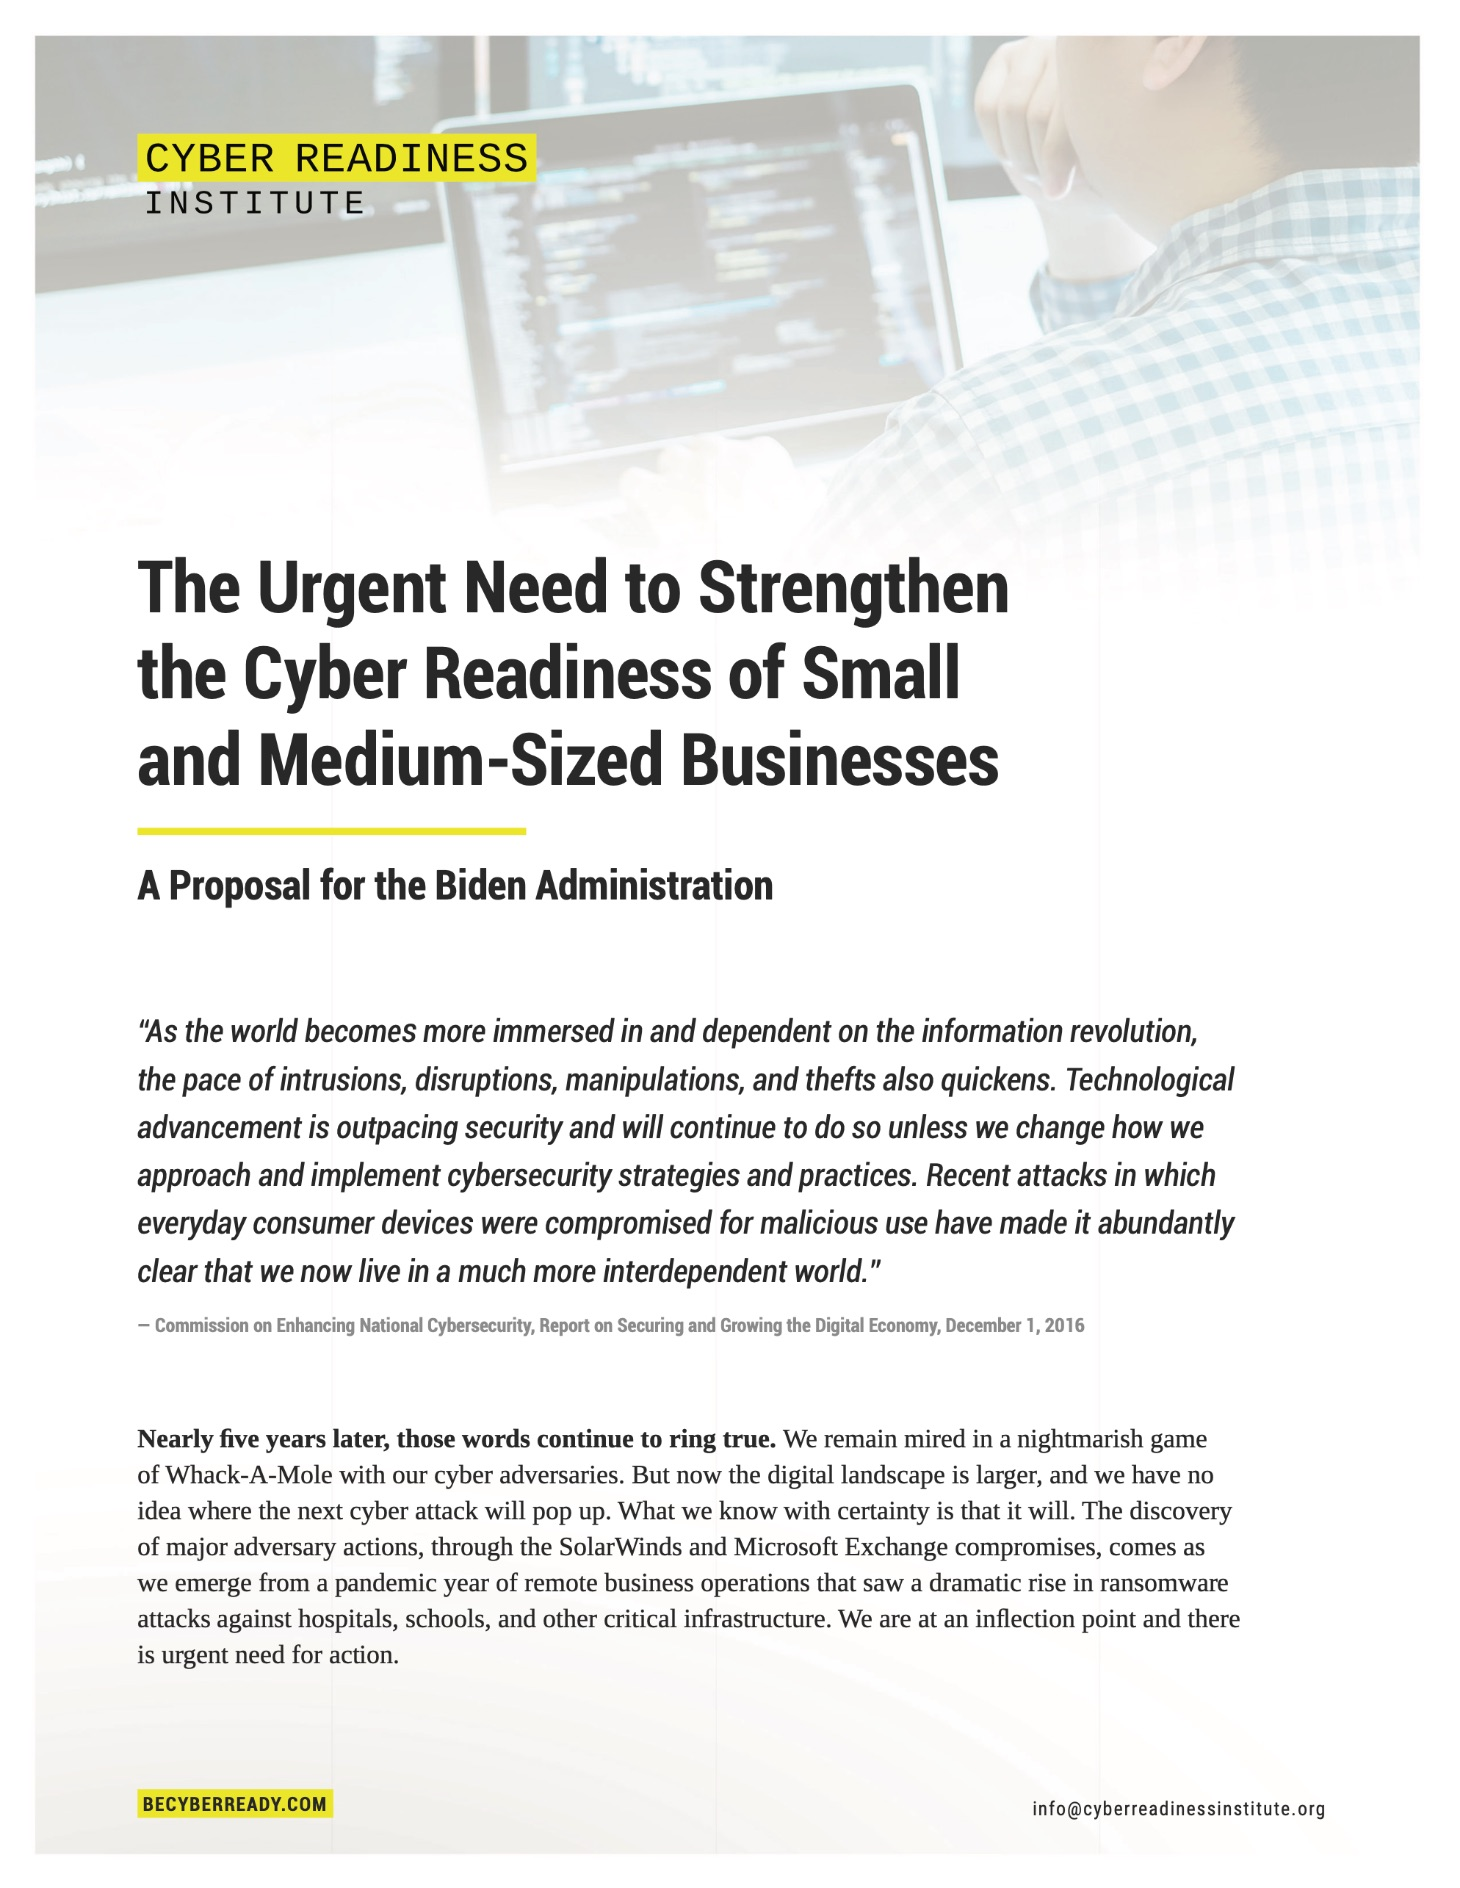 CRI-The Urgent Need to Strengthen the Cyber Readiness of Small and Medium-Sized Businesses